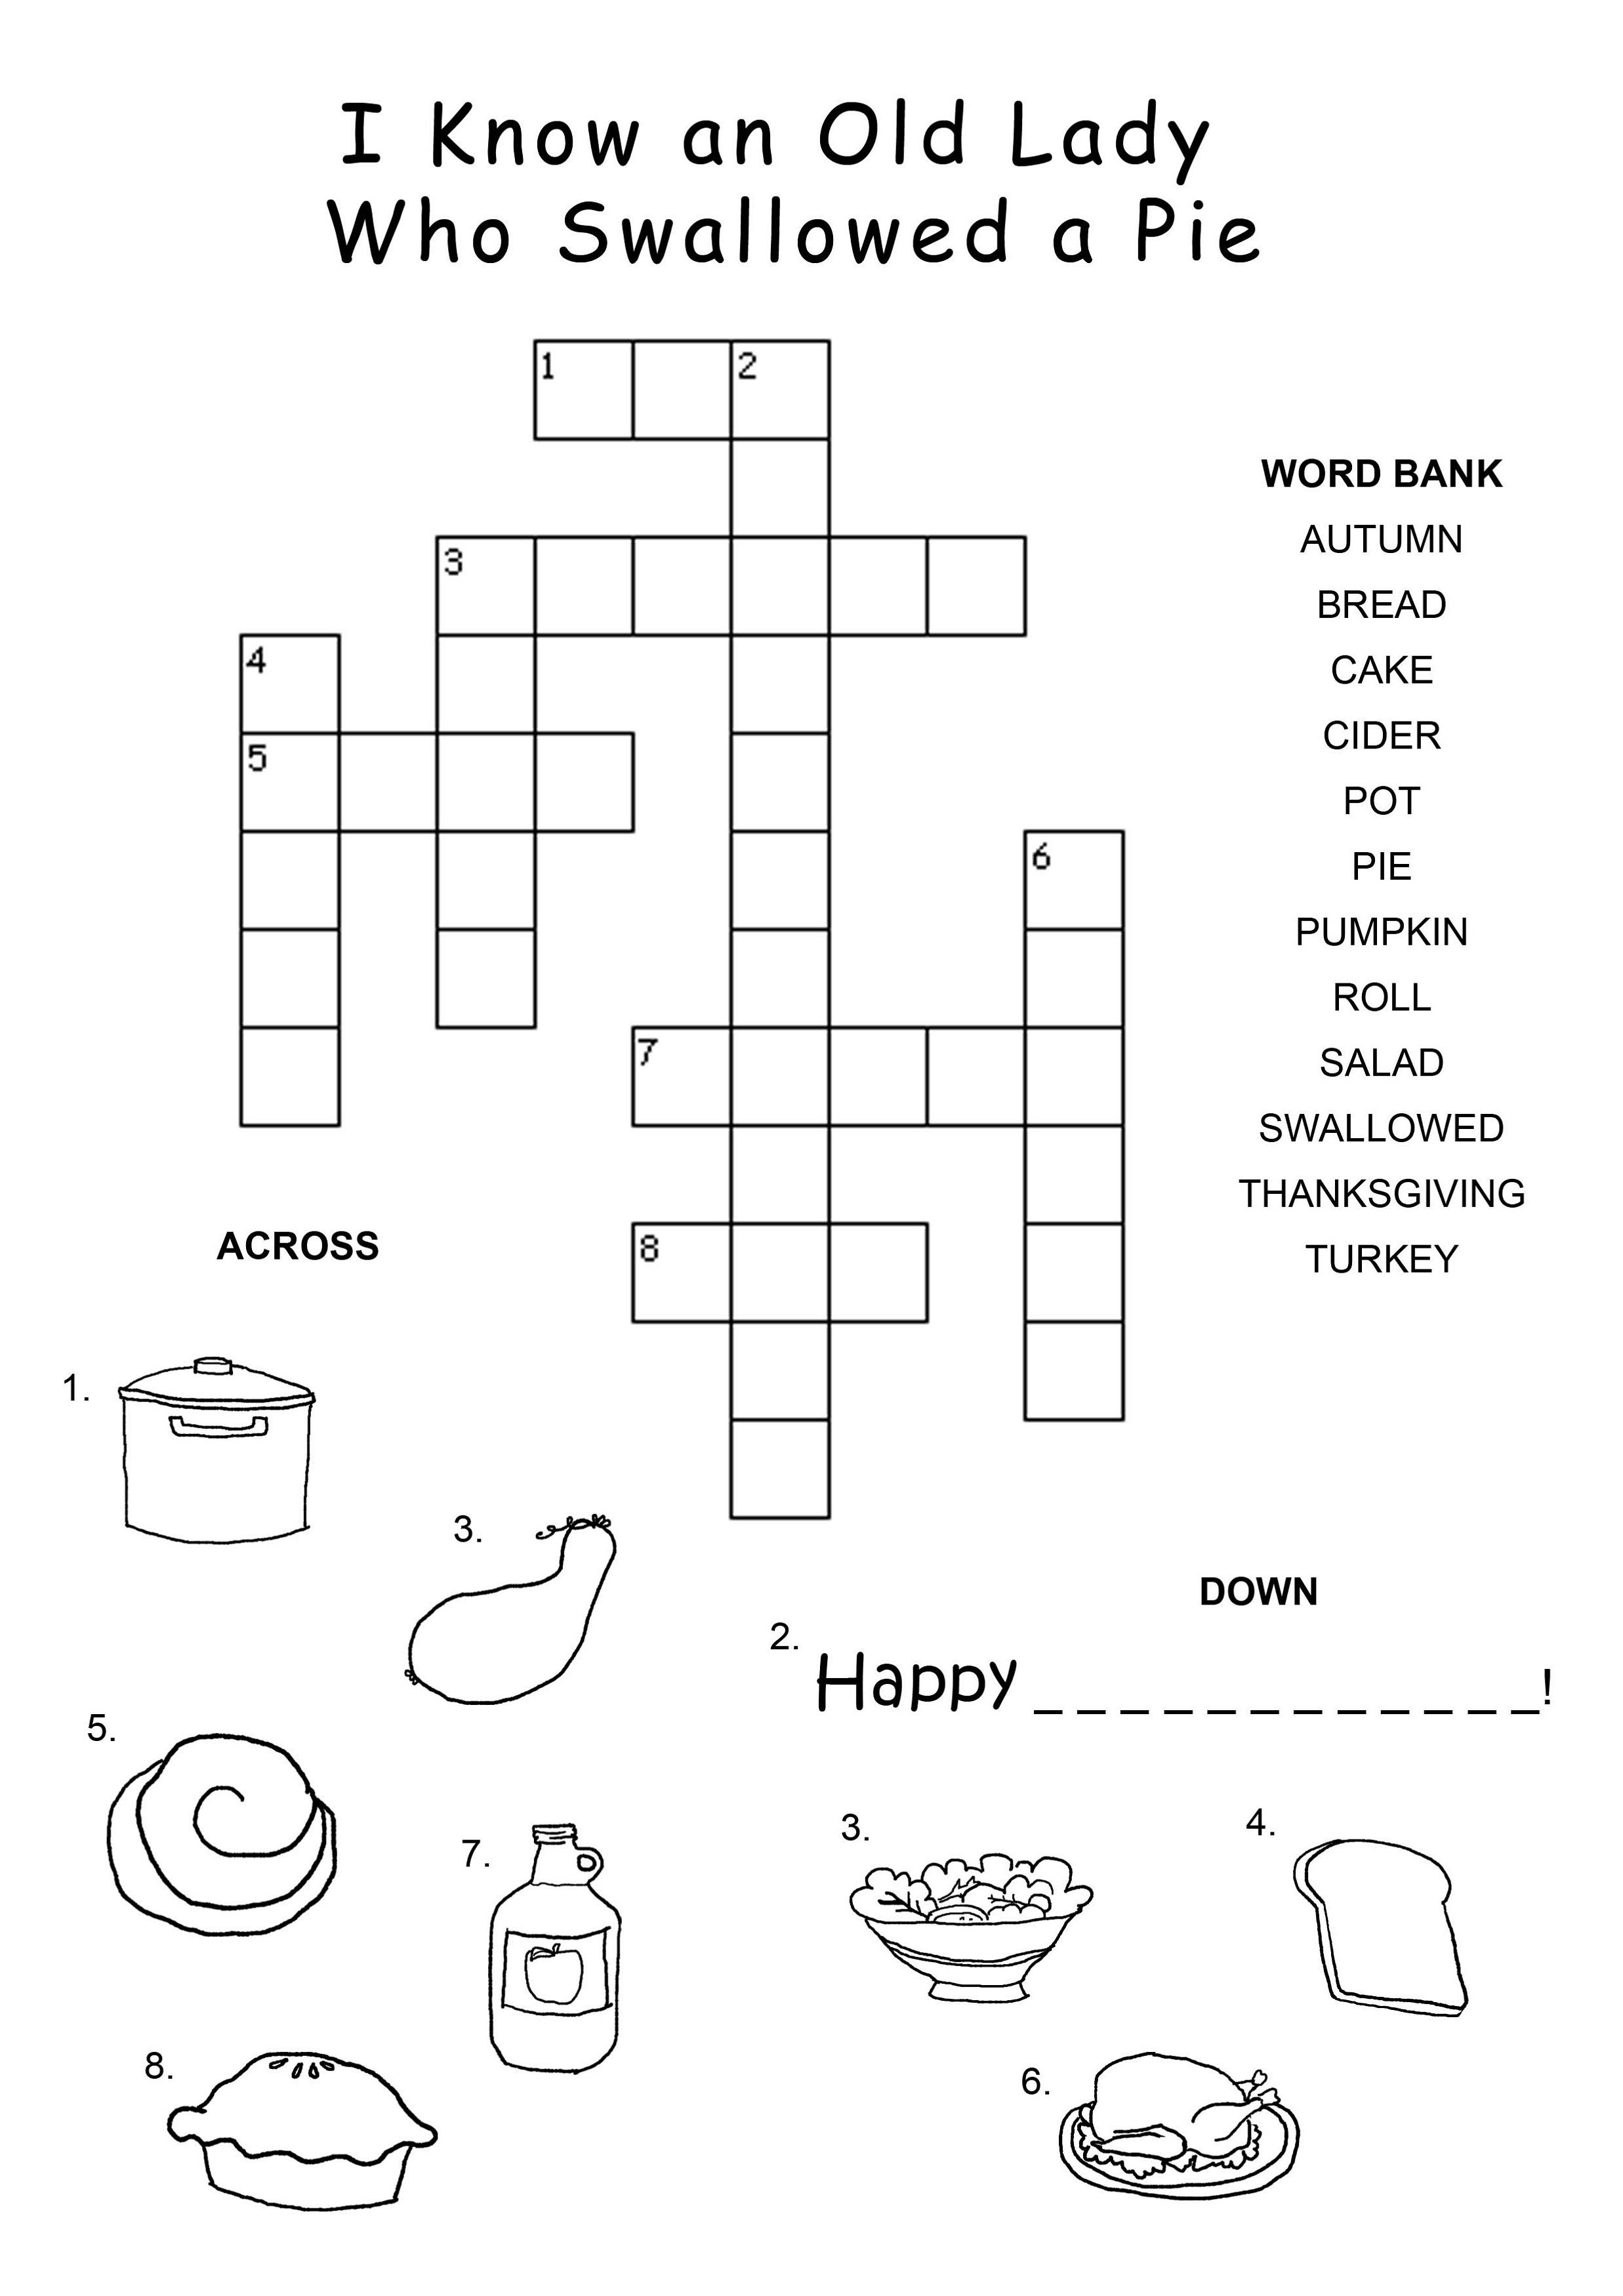 Thanksgiving Crossword Puzzle - Best Coloring Pages For Kids - Printable Thanksgiving Crossword Puzzles